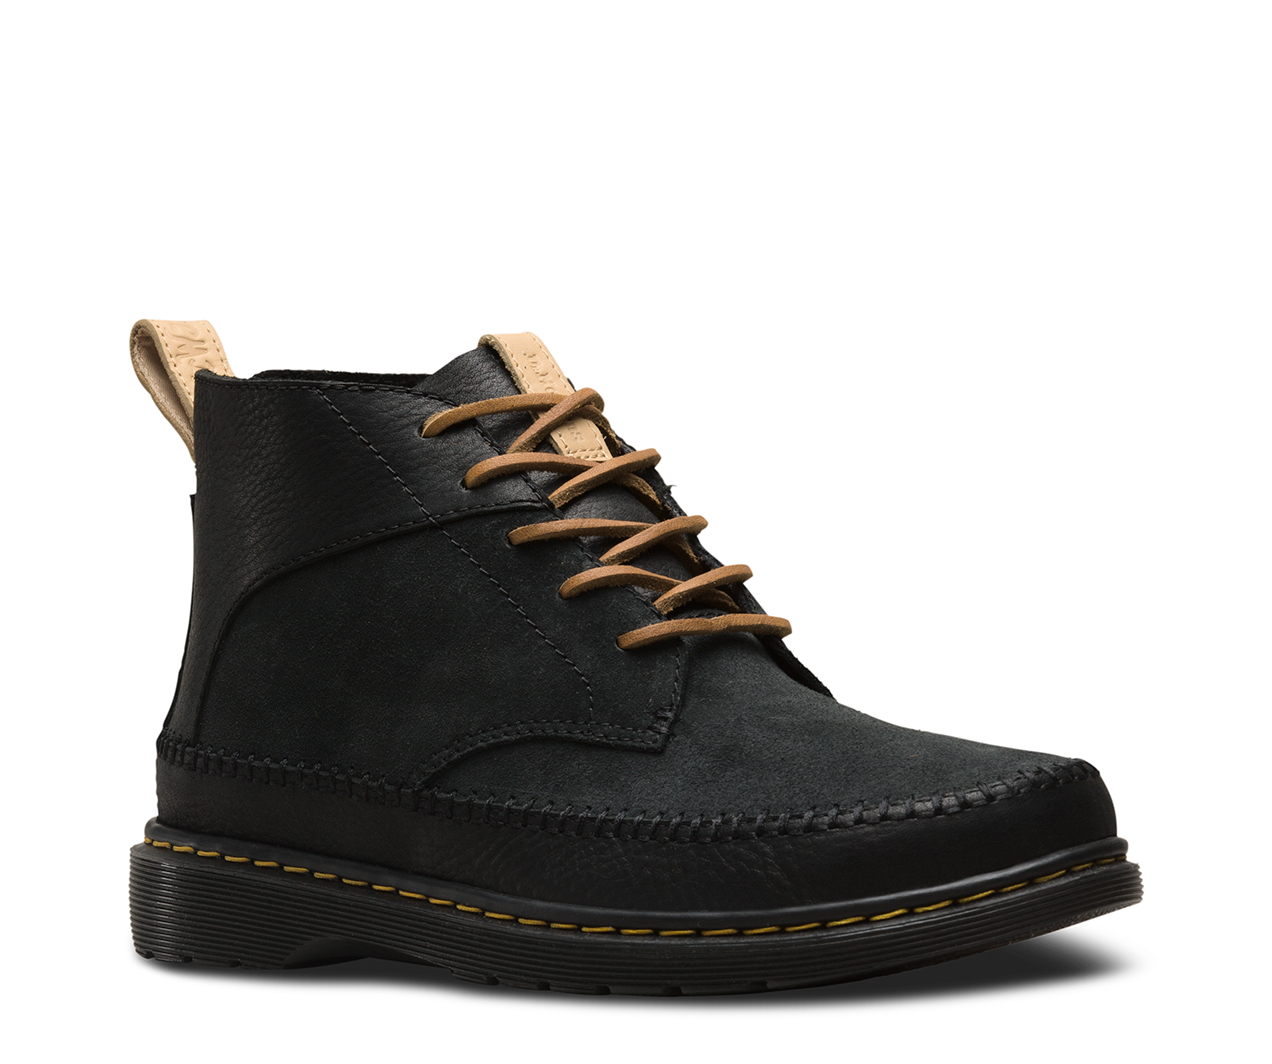 Flloyd Aw18 Dr Martens Official Site